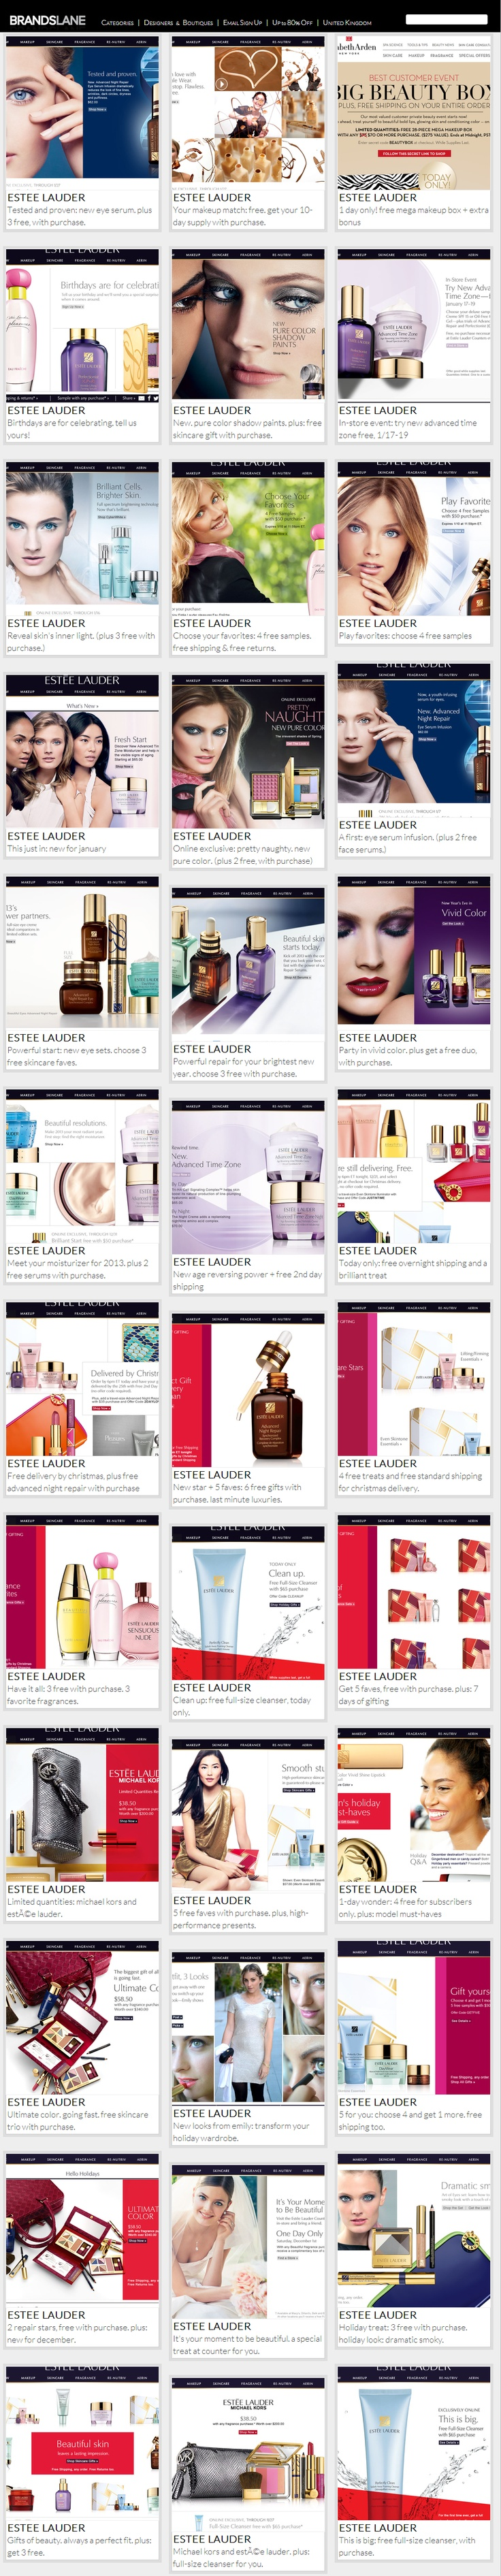 estee lauder a success story pdf